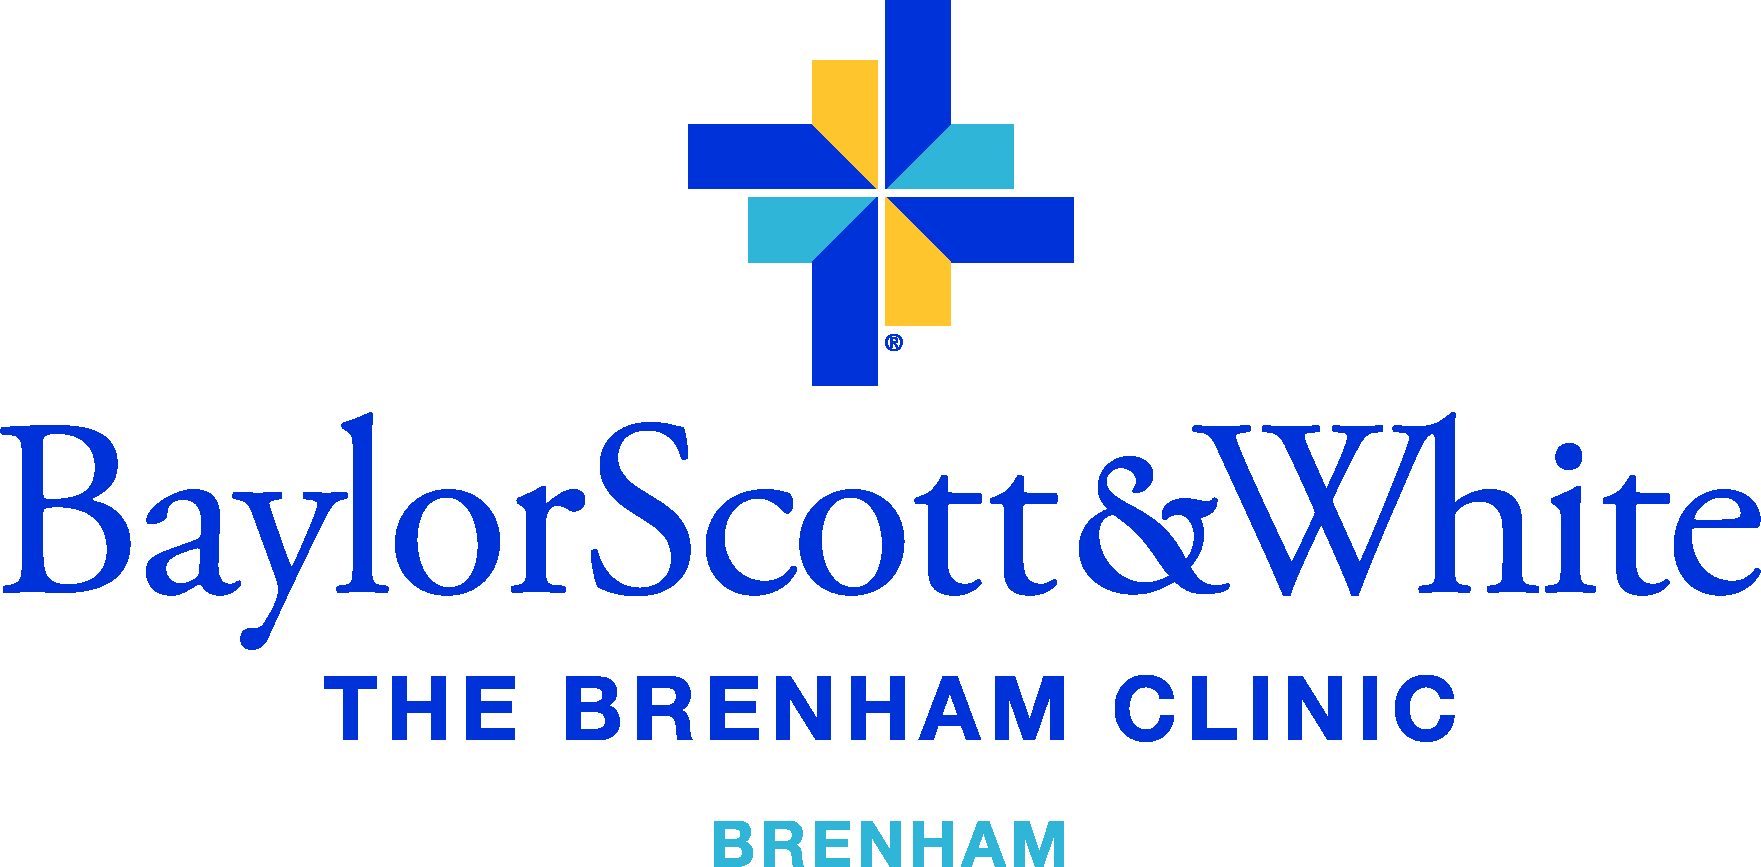 BSW The Brenham Clinic Brenham_C_4c